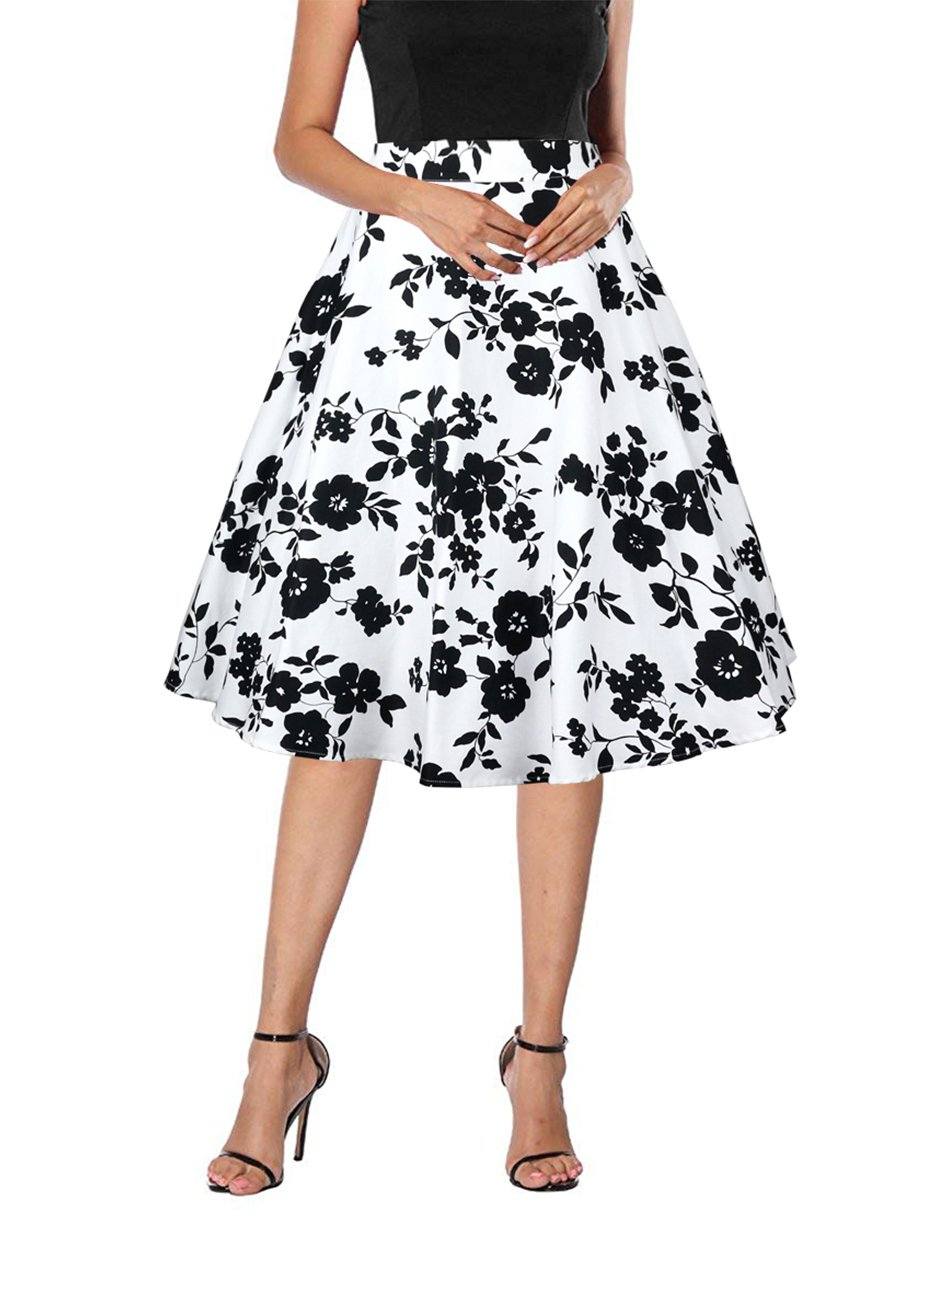 Yanmei Women's 40s 60s Party Swing Skirt with Floral Pattern Casual Skirt White X-Large 1086-9